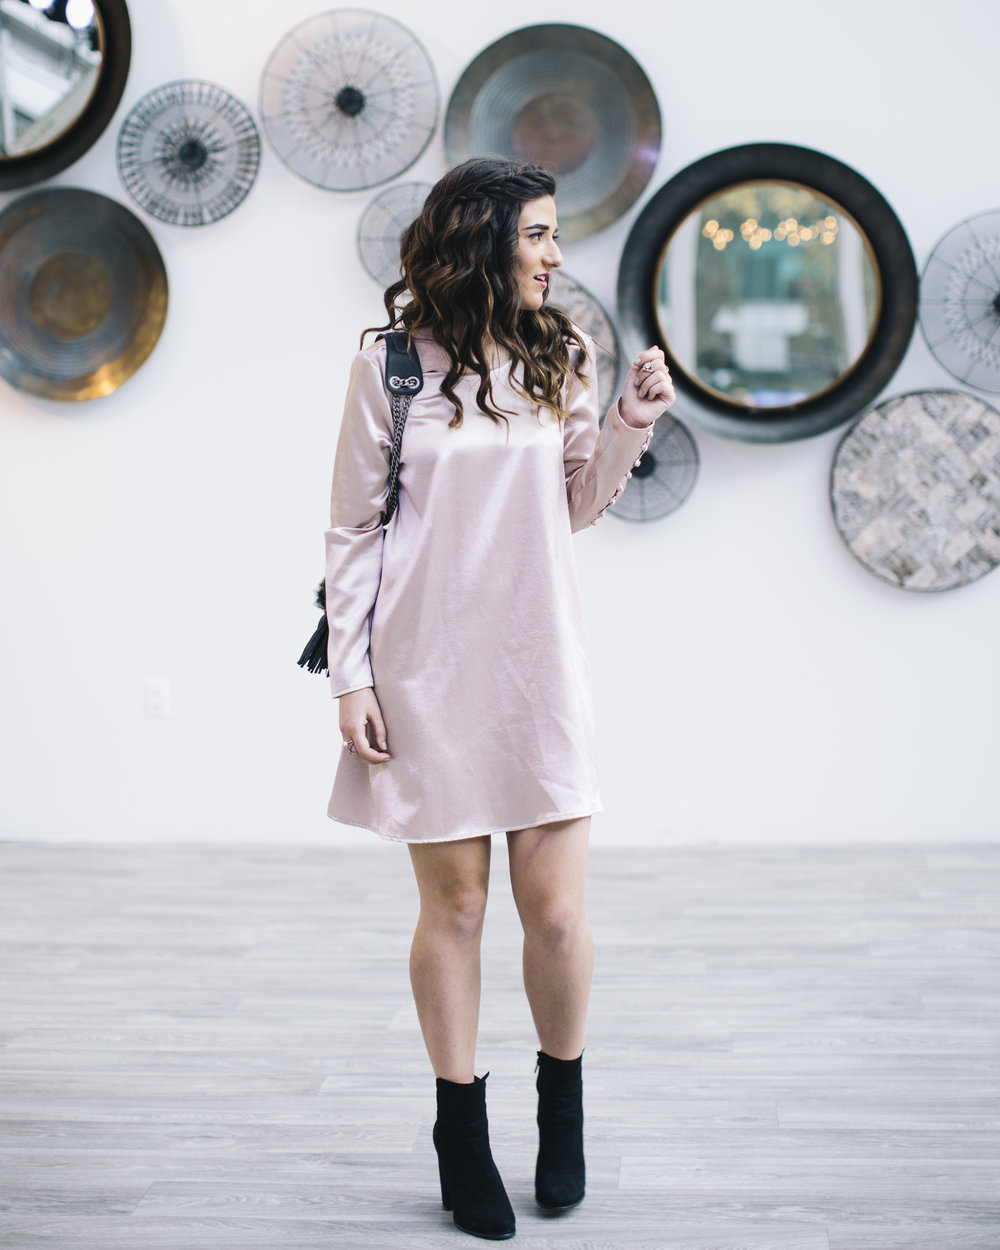 Blush Dress Faux-Fur Bag Q&A On Blogger Collaborations Louboutins & Love Fashion Blog Esther Santer NYC Street Style Blogger Outfit OOTD Trendy Shoes Black Booties Online Shopping Purse Pretty Girl Women Hair Pink Braid Inspo Holiday Lifestyle Clothes.jpg